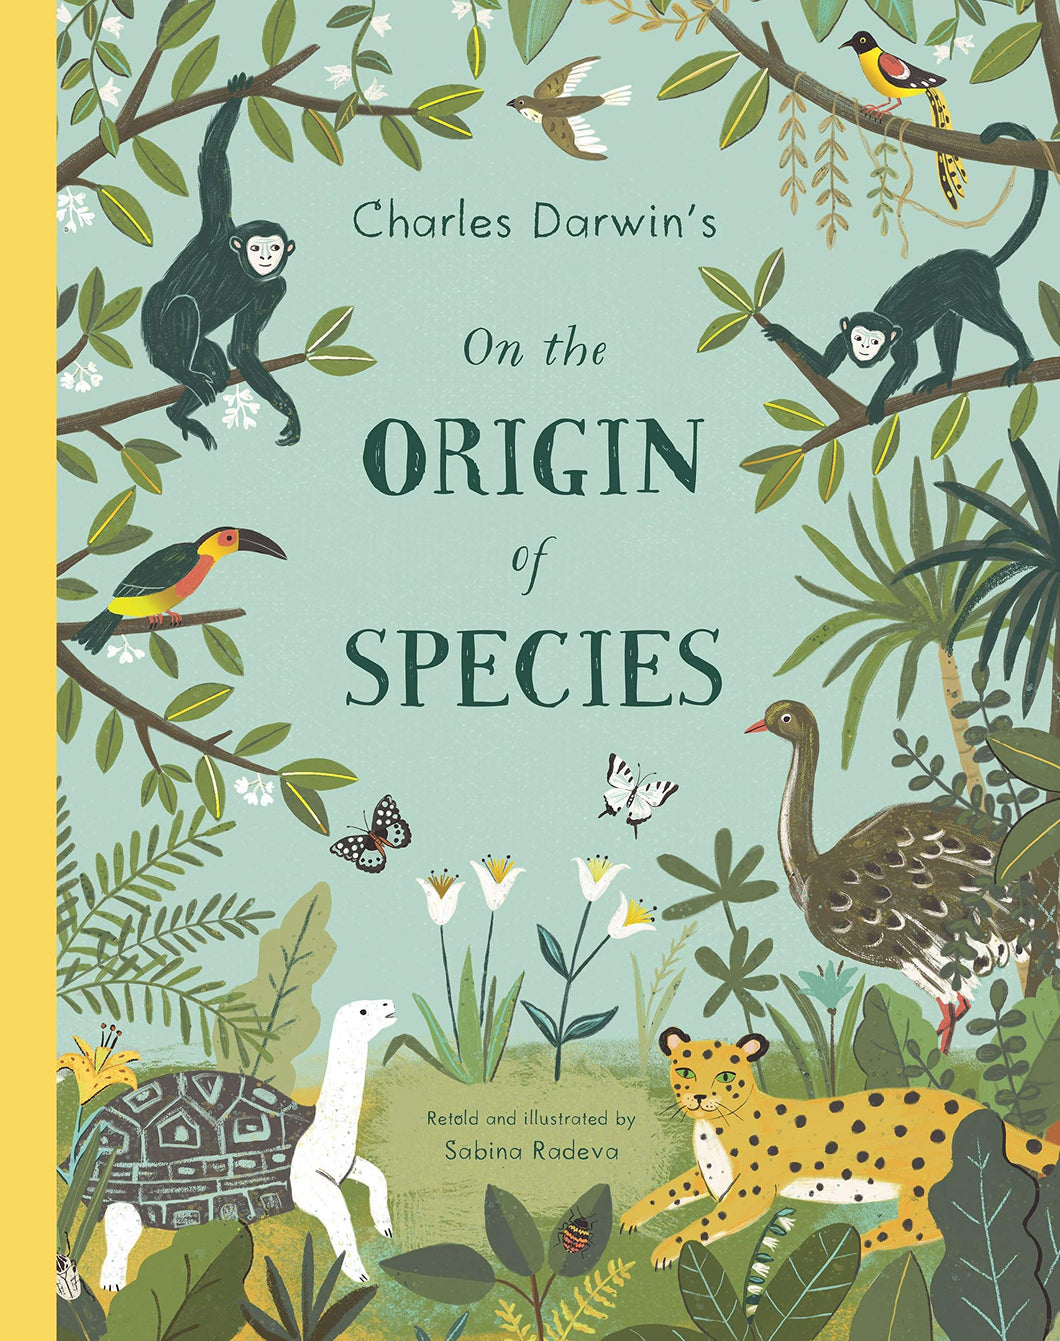 on the origin of species charles darwin sabina radeva retold illustrated picture book evolution generations easy-to-understand explanation theory of evolution 1859 biologist observations explanation develop change important puffin penguin random house biologist book books ages 5+